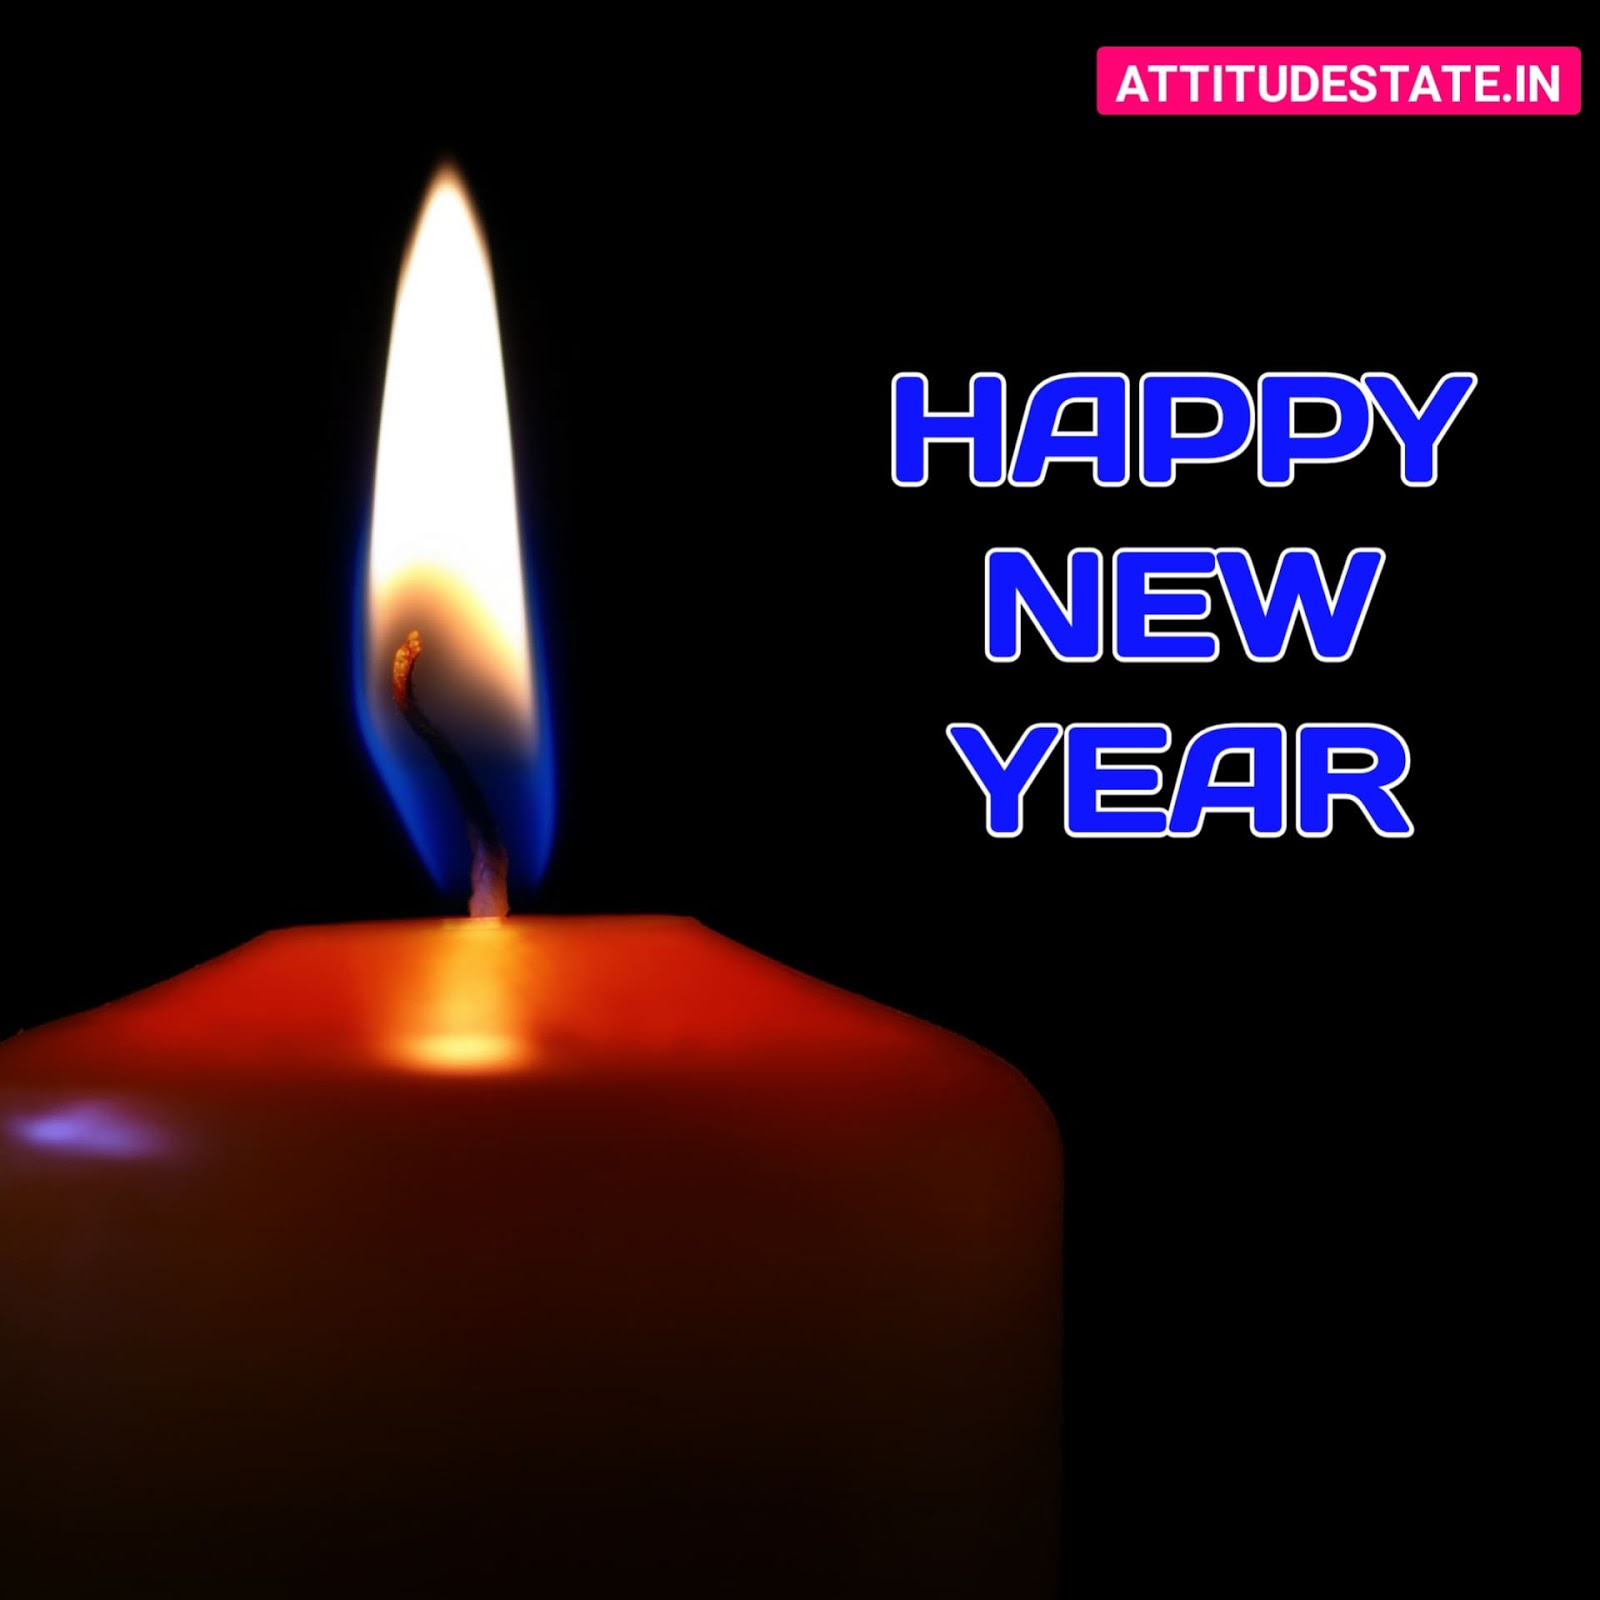 60 Happy New Year 2020 Images Photo Wishes Wallpapers